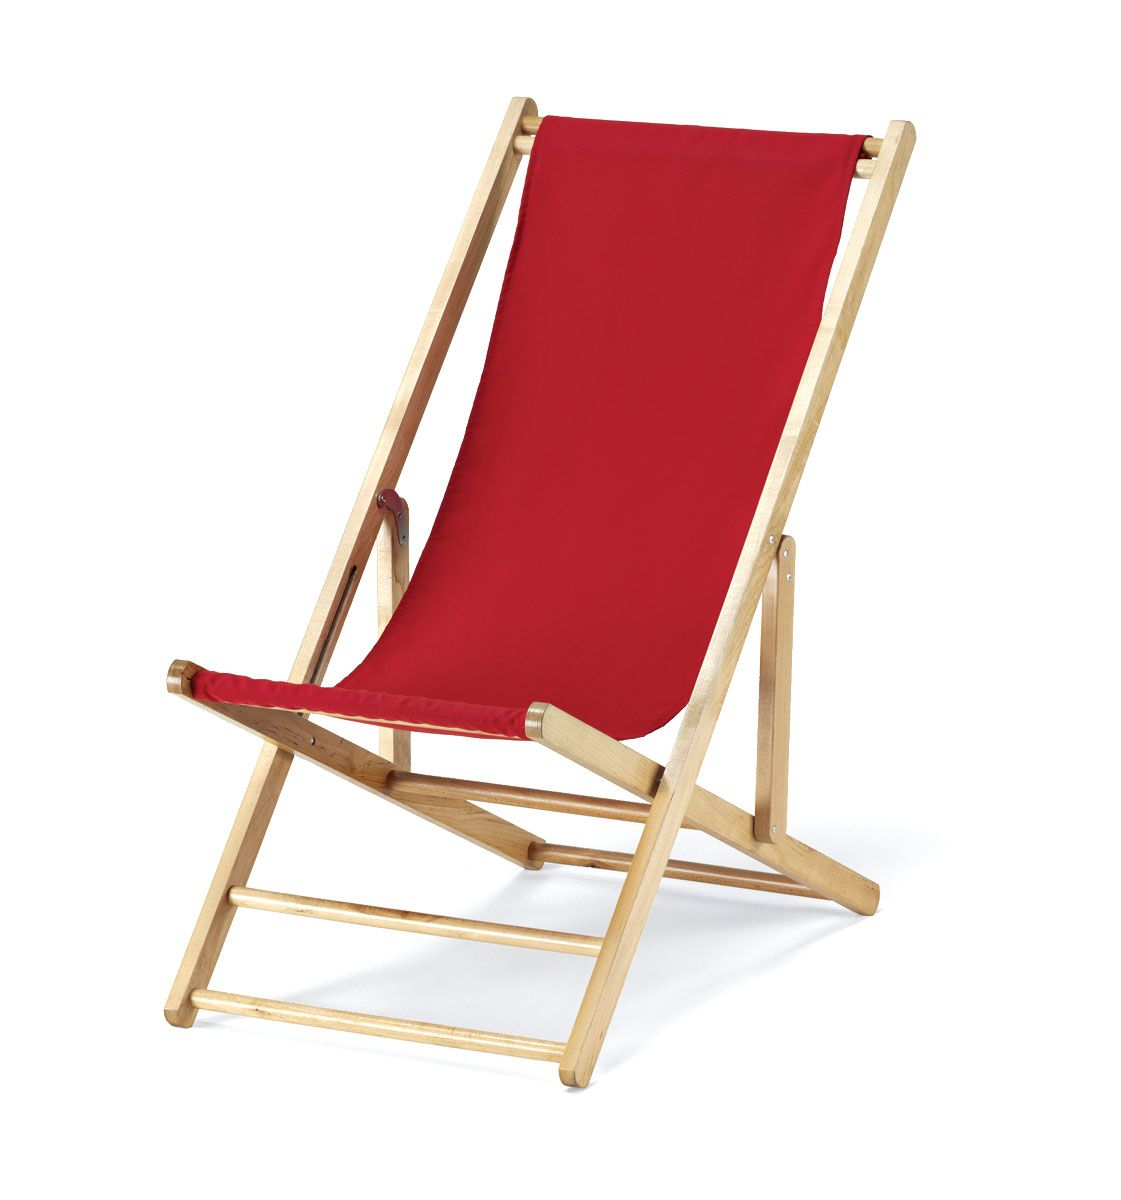 Wood folding chair outdoor - Cabana Beach Sling Chair Wooden Beach Chairs